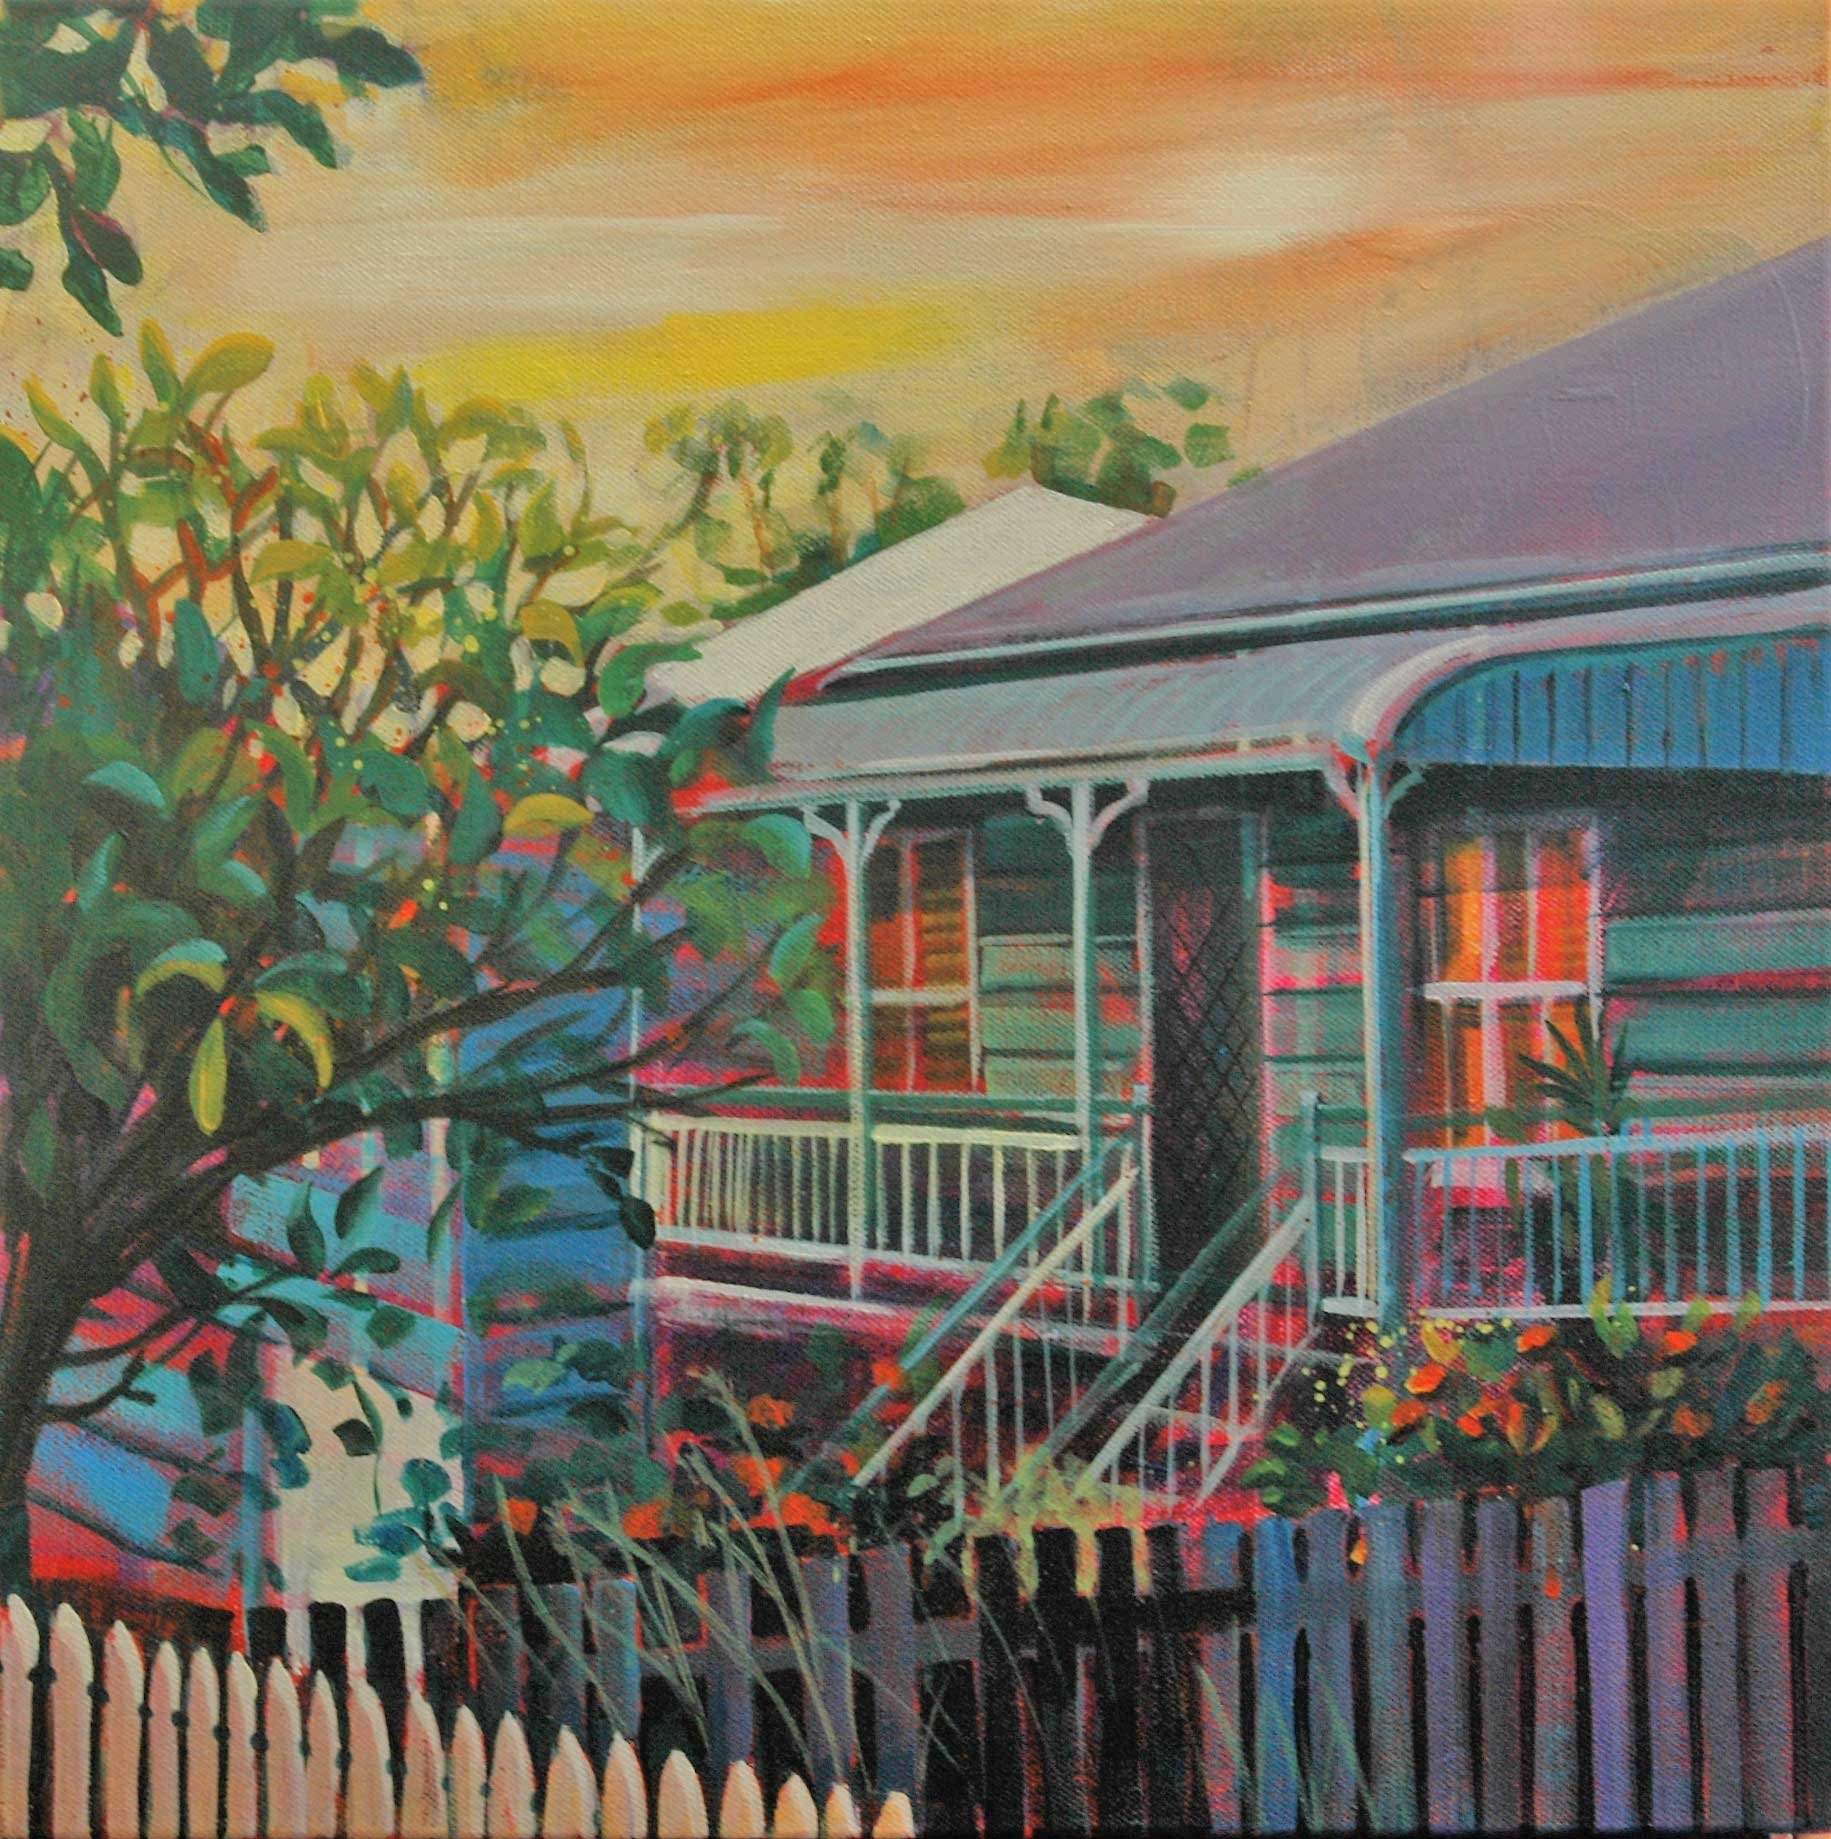 Evening light reflected - Worker's Cottage